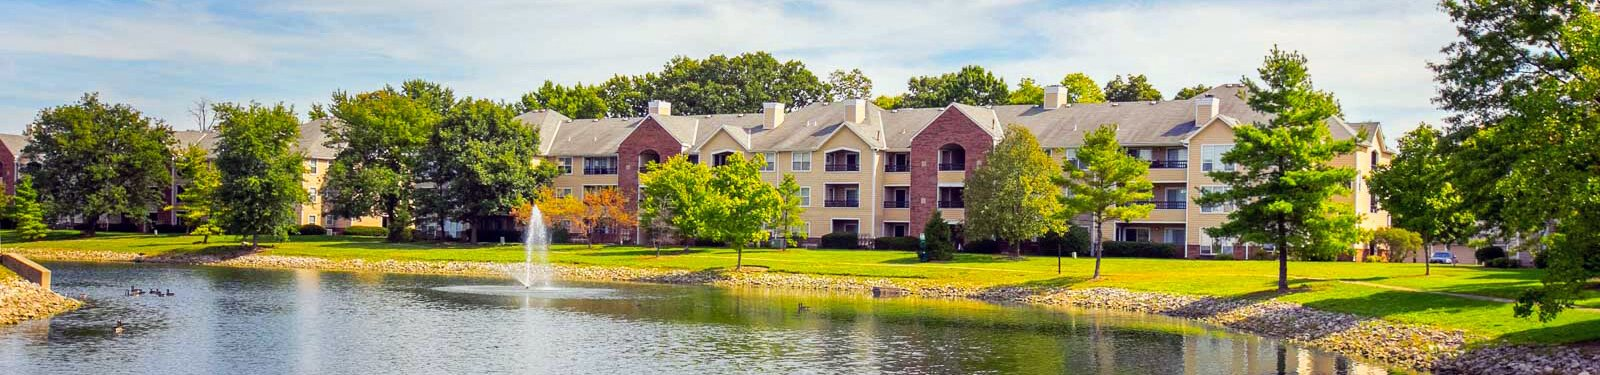 Lake view at Saw Mill Village Apartments in Columbus OH